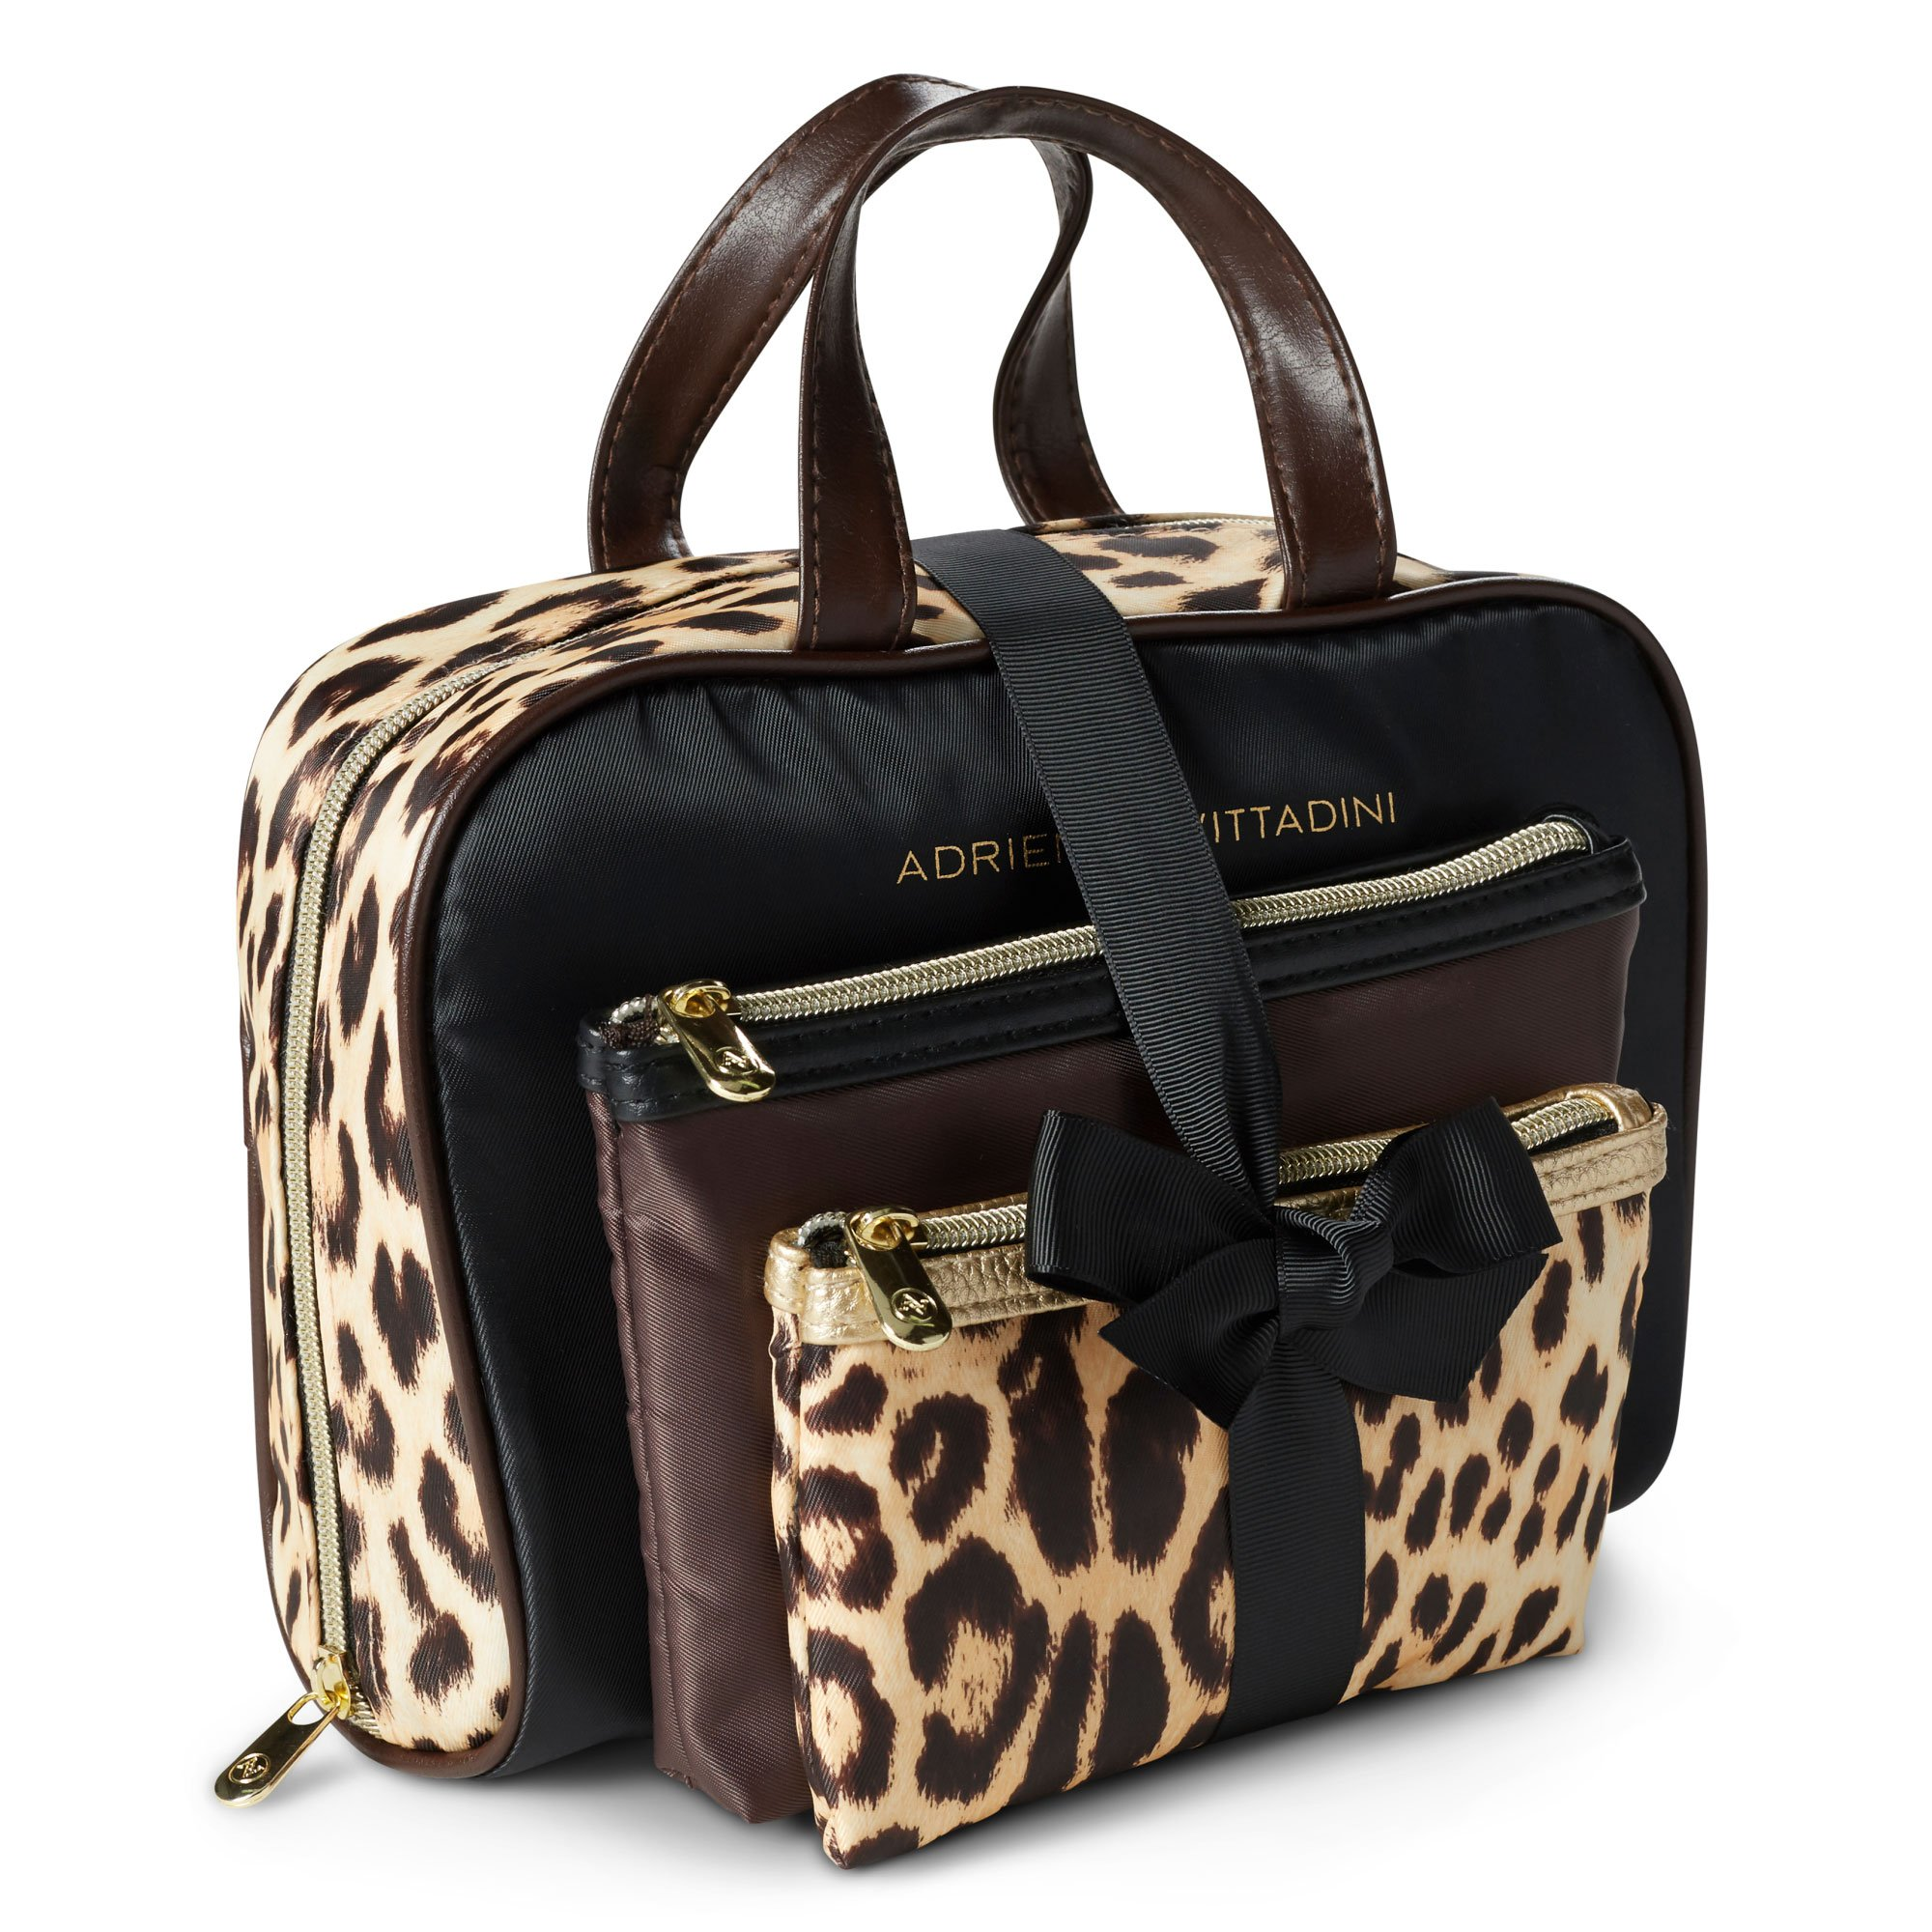 cde19355b4 Adrienne Vittadini Cosmetic Bag Set  3 Travel Makeup Toiletry Bags with  Zippered Closure - Large